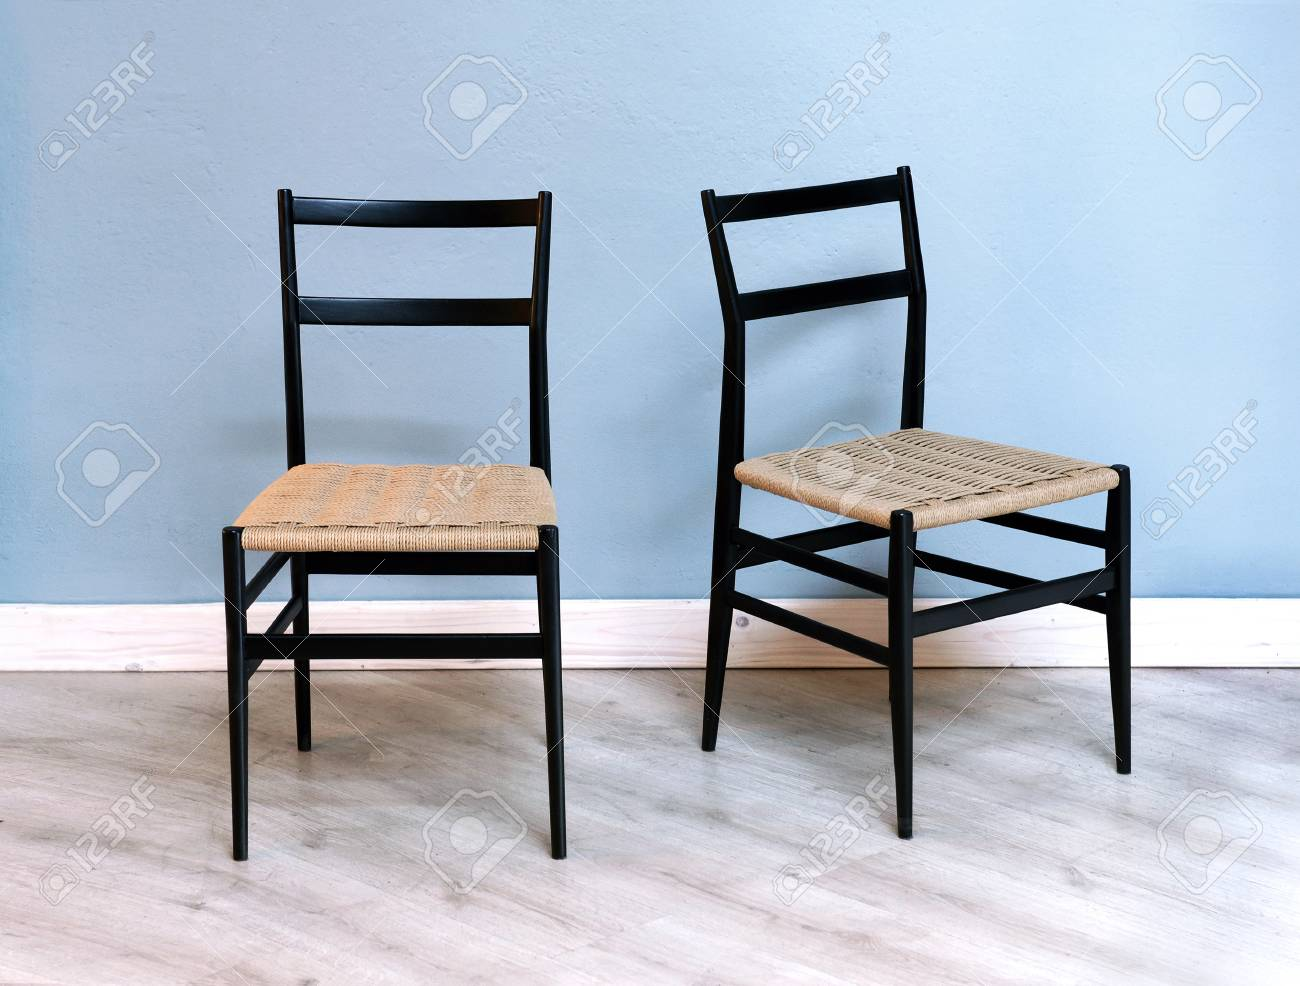 Two simple black kitchen or dining chairs with woven wicker seats..